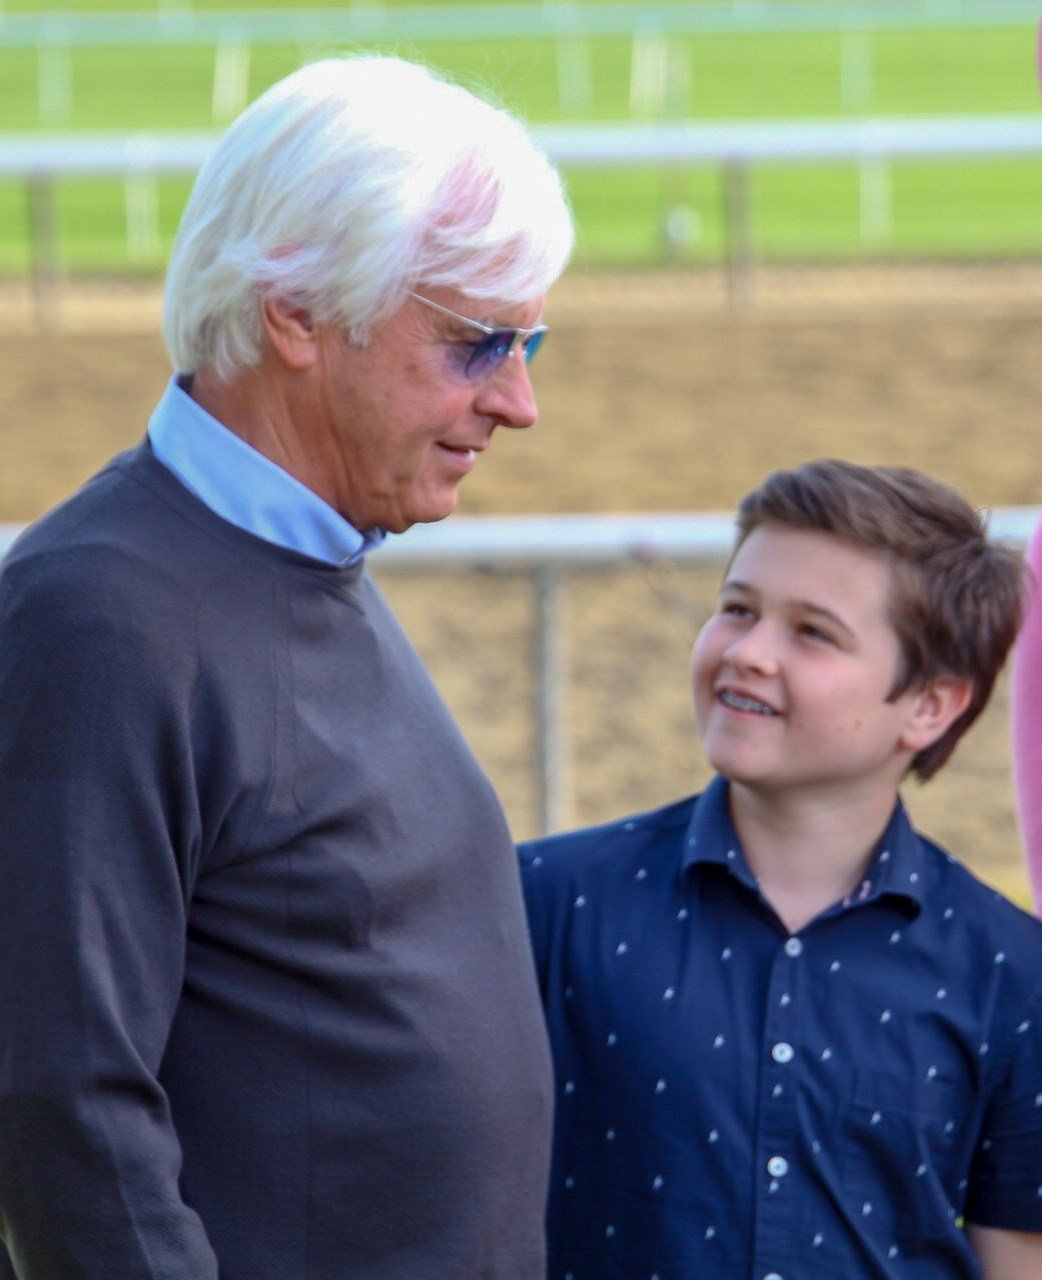 Bob Baffert and his son Bode at Belmont Park. (WDRB photo by Eric Crawford)